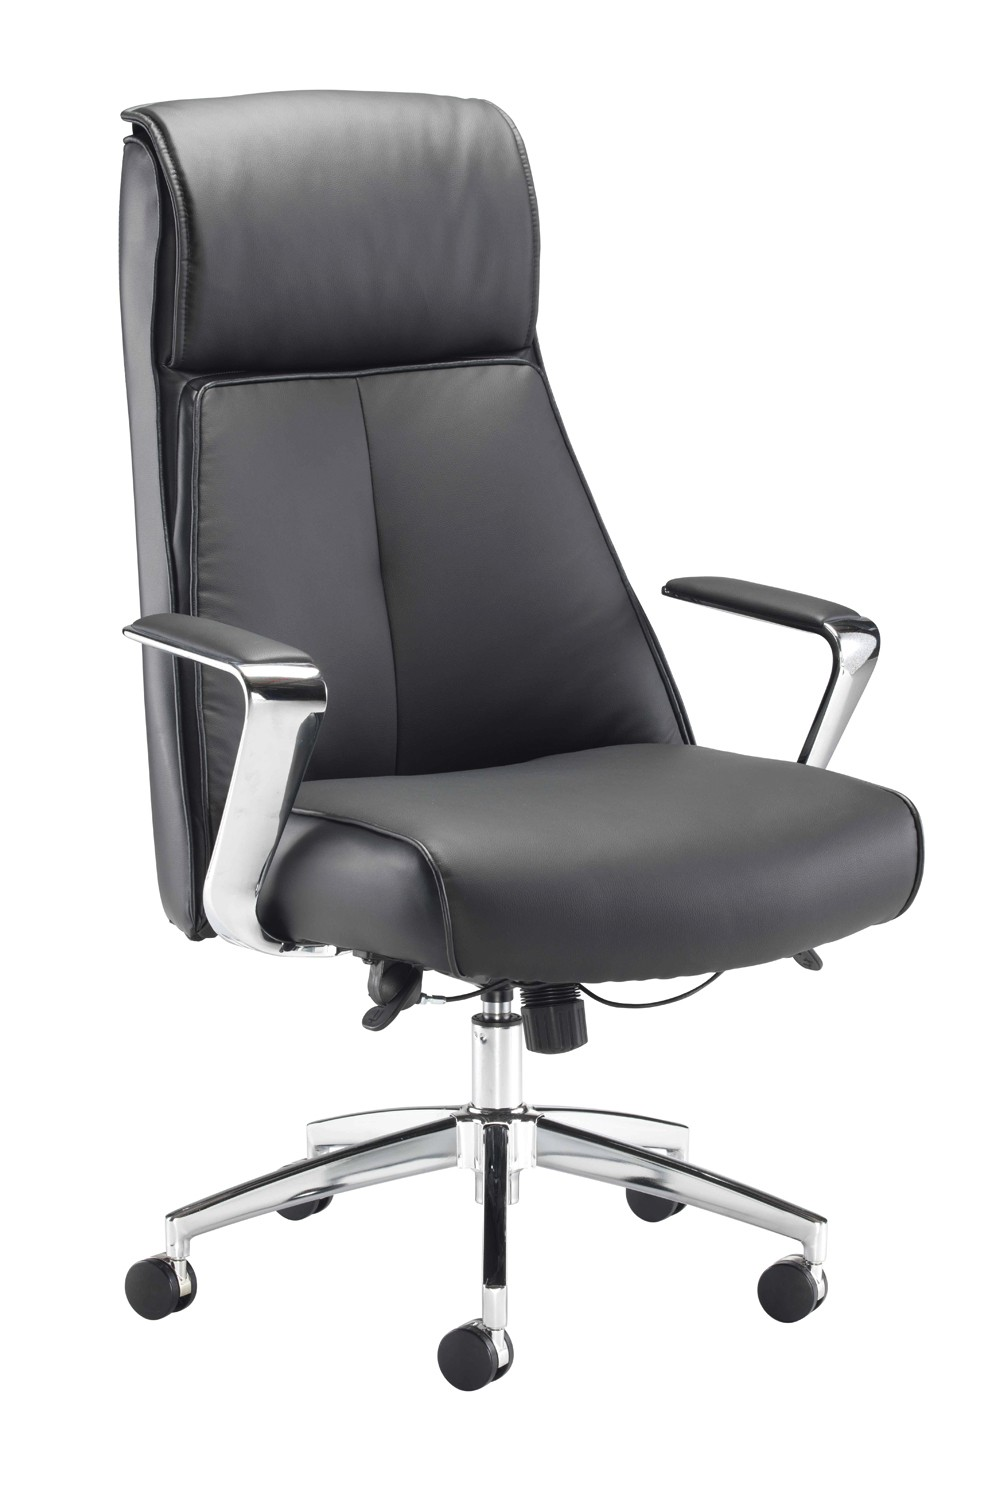 York Leather Look Chair